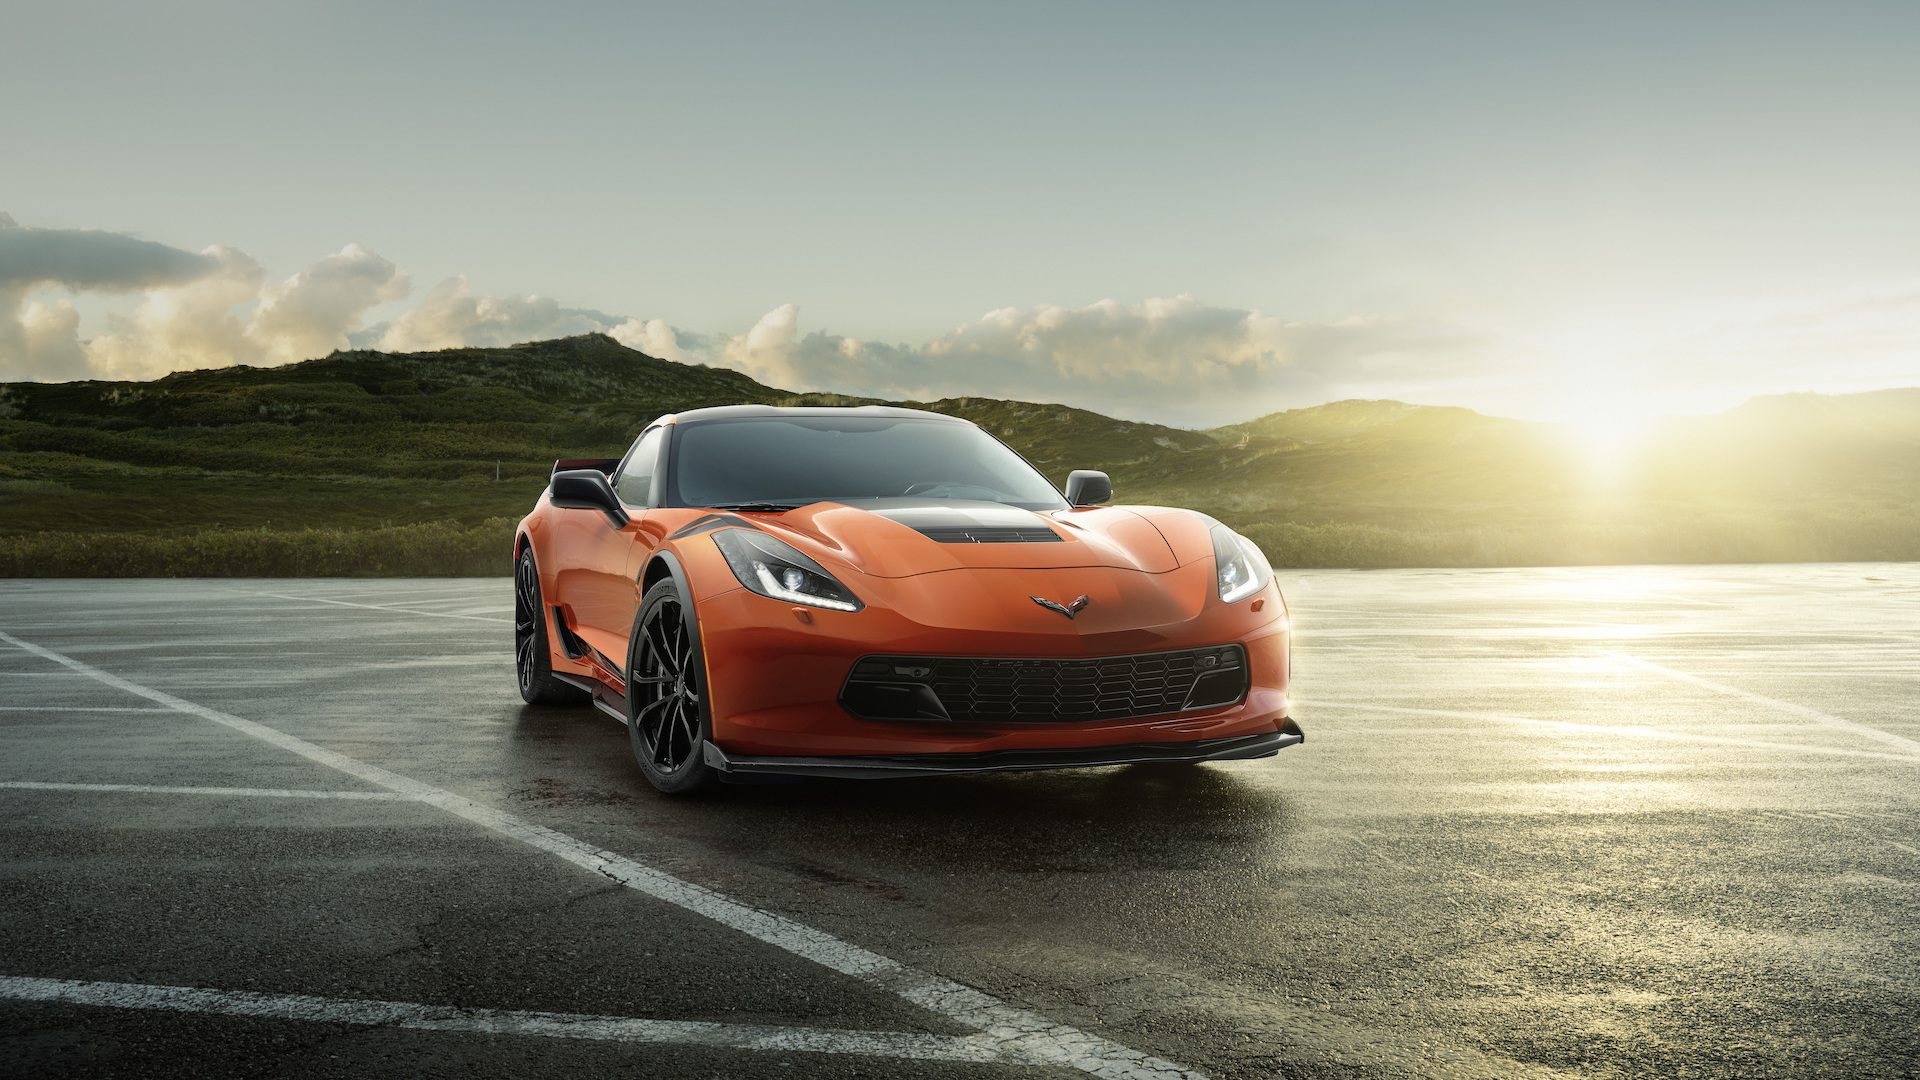 2019 Chevrolet Corvette Final Edition for Europe